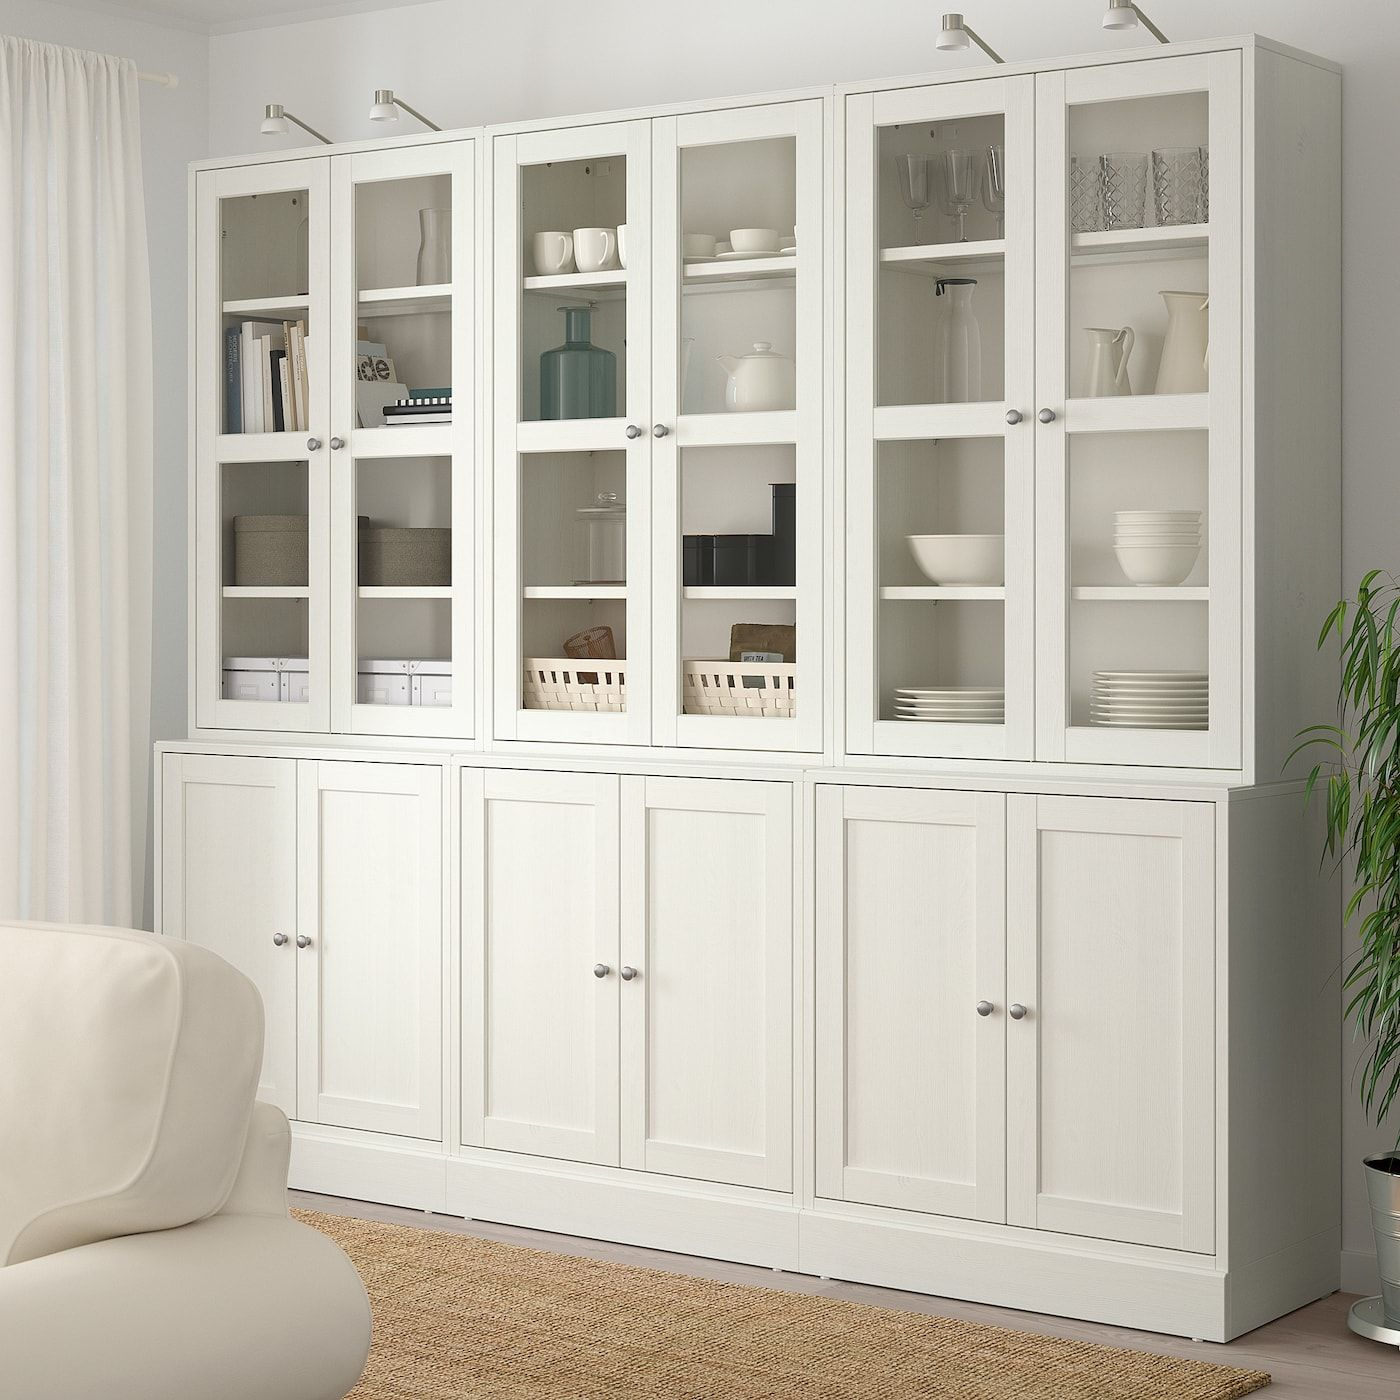 HAVSTA Storage combination wglass doors, white, 95 58x18 1